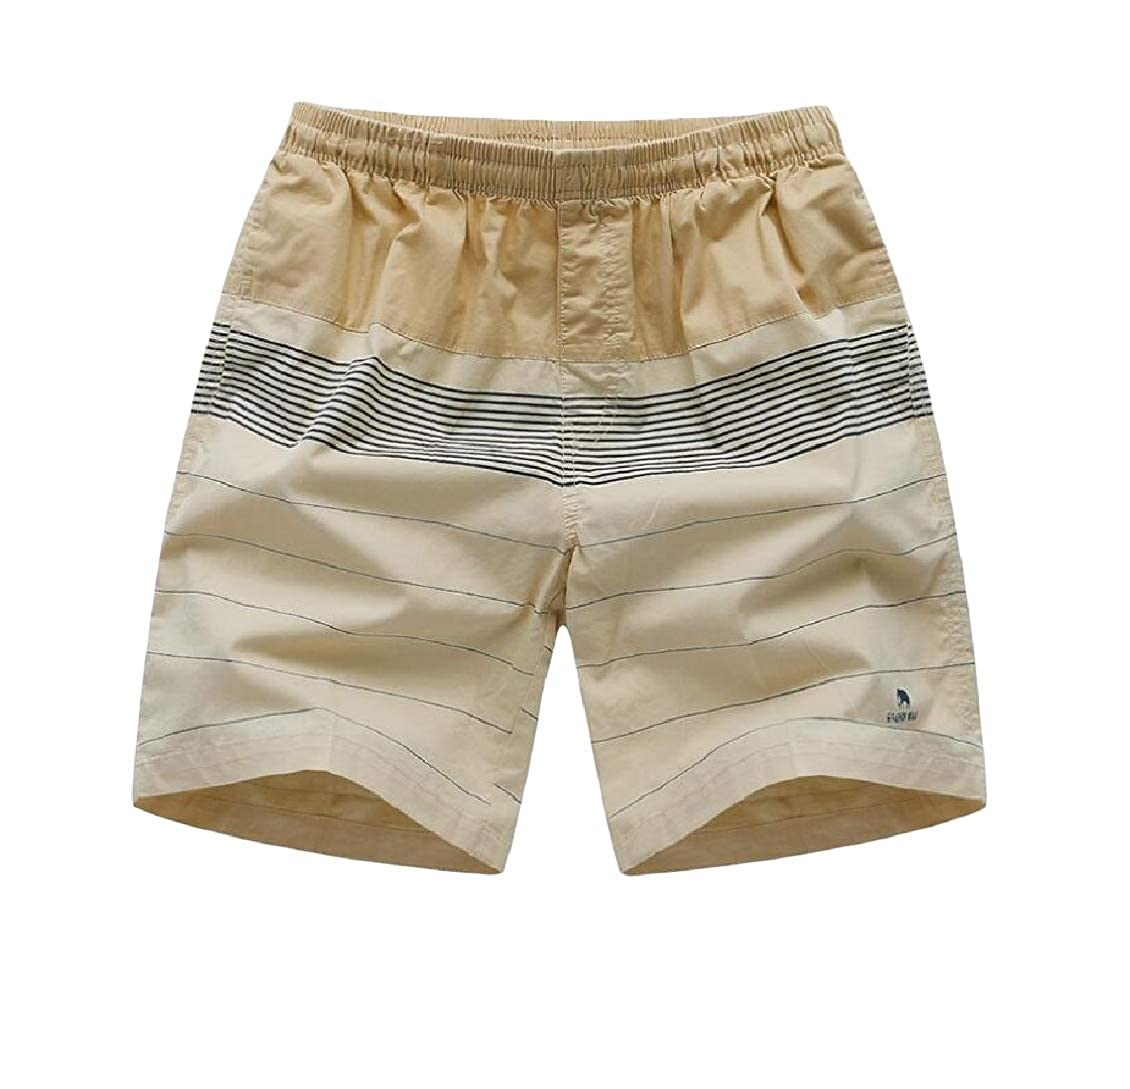 Hajotrawa Mens Beach Slim Stripe Contrast Color Cotton Sports Shorts